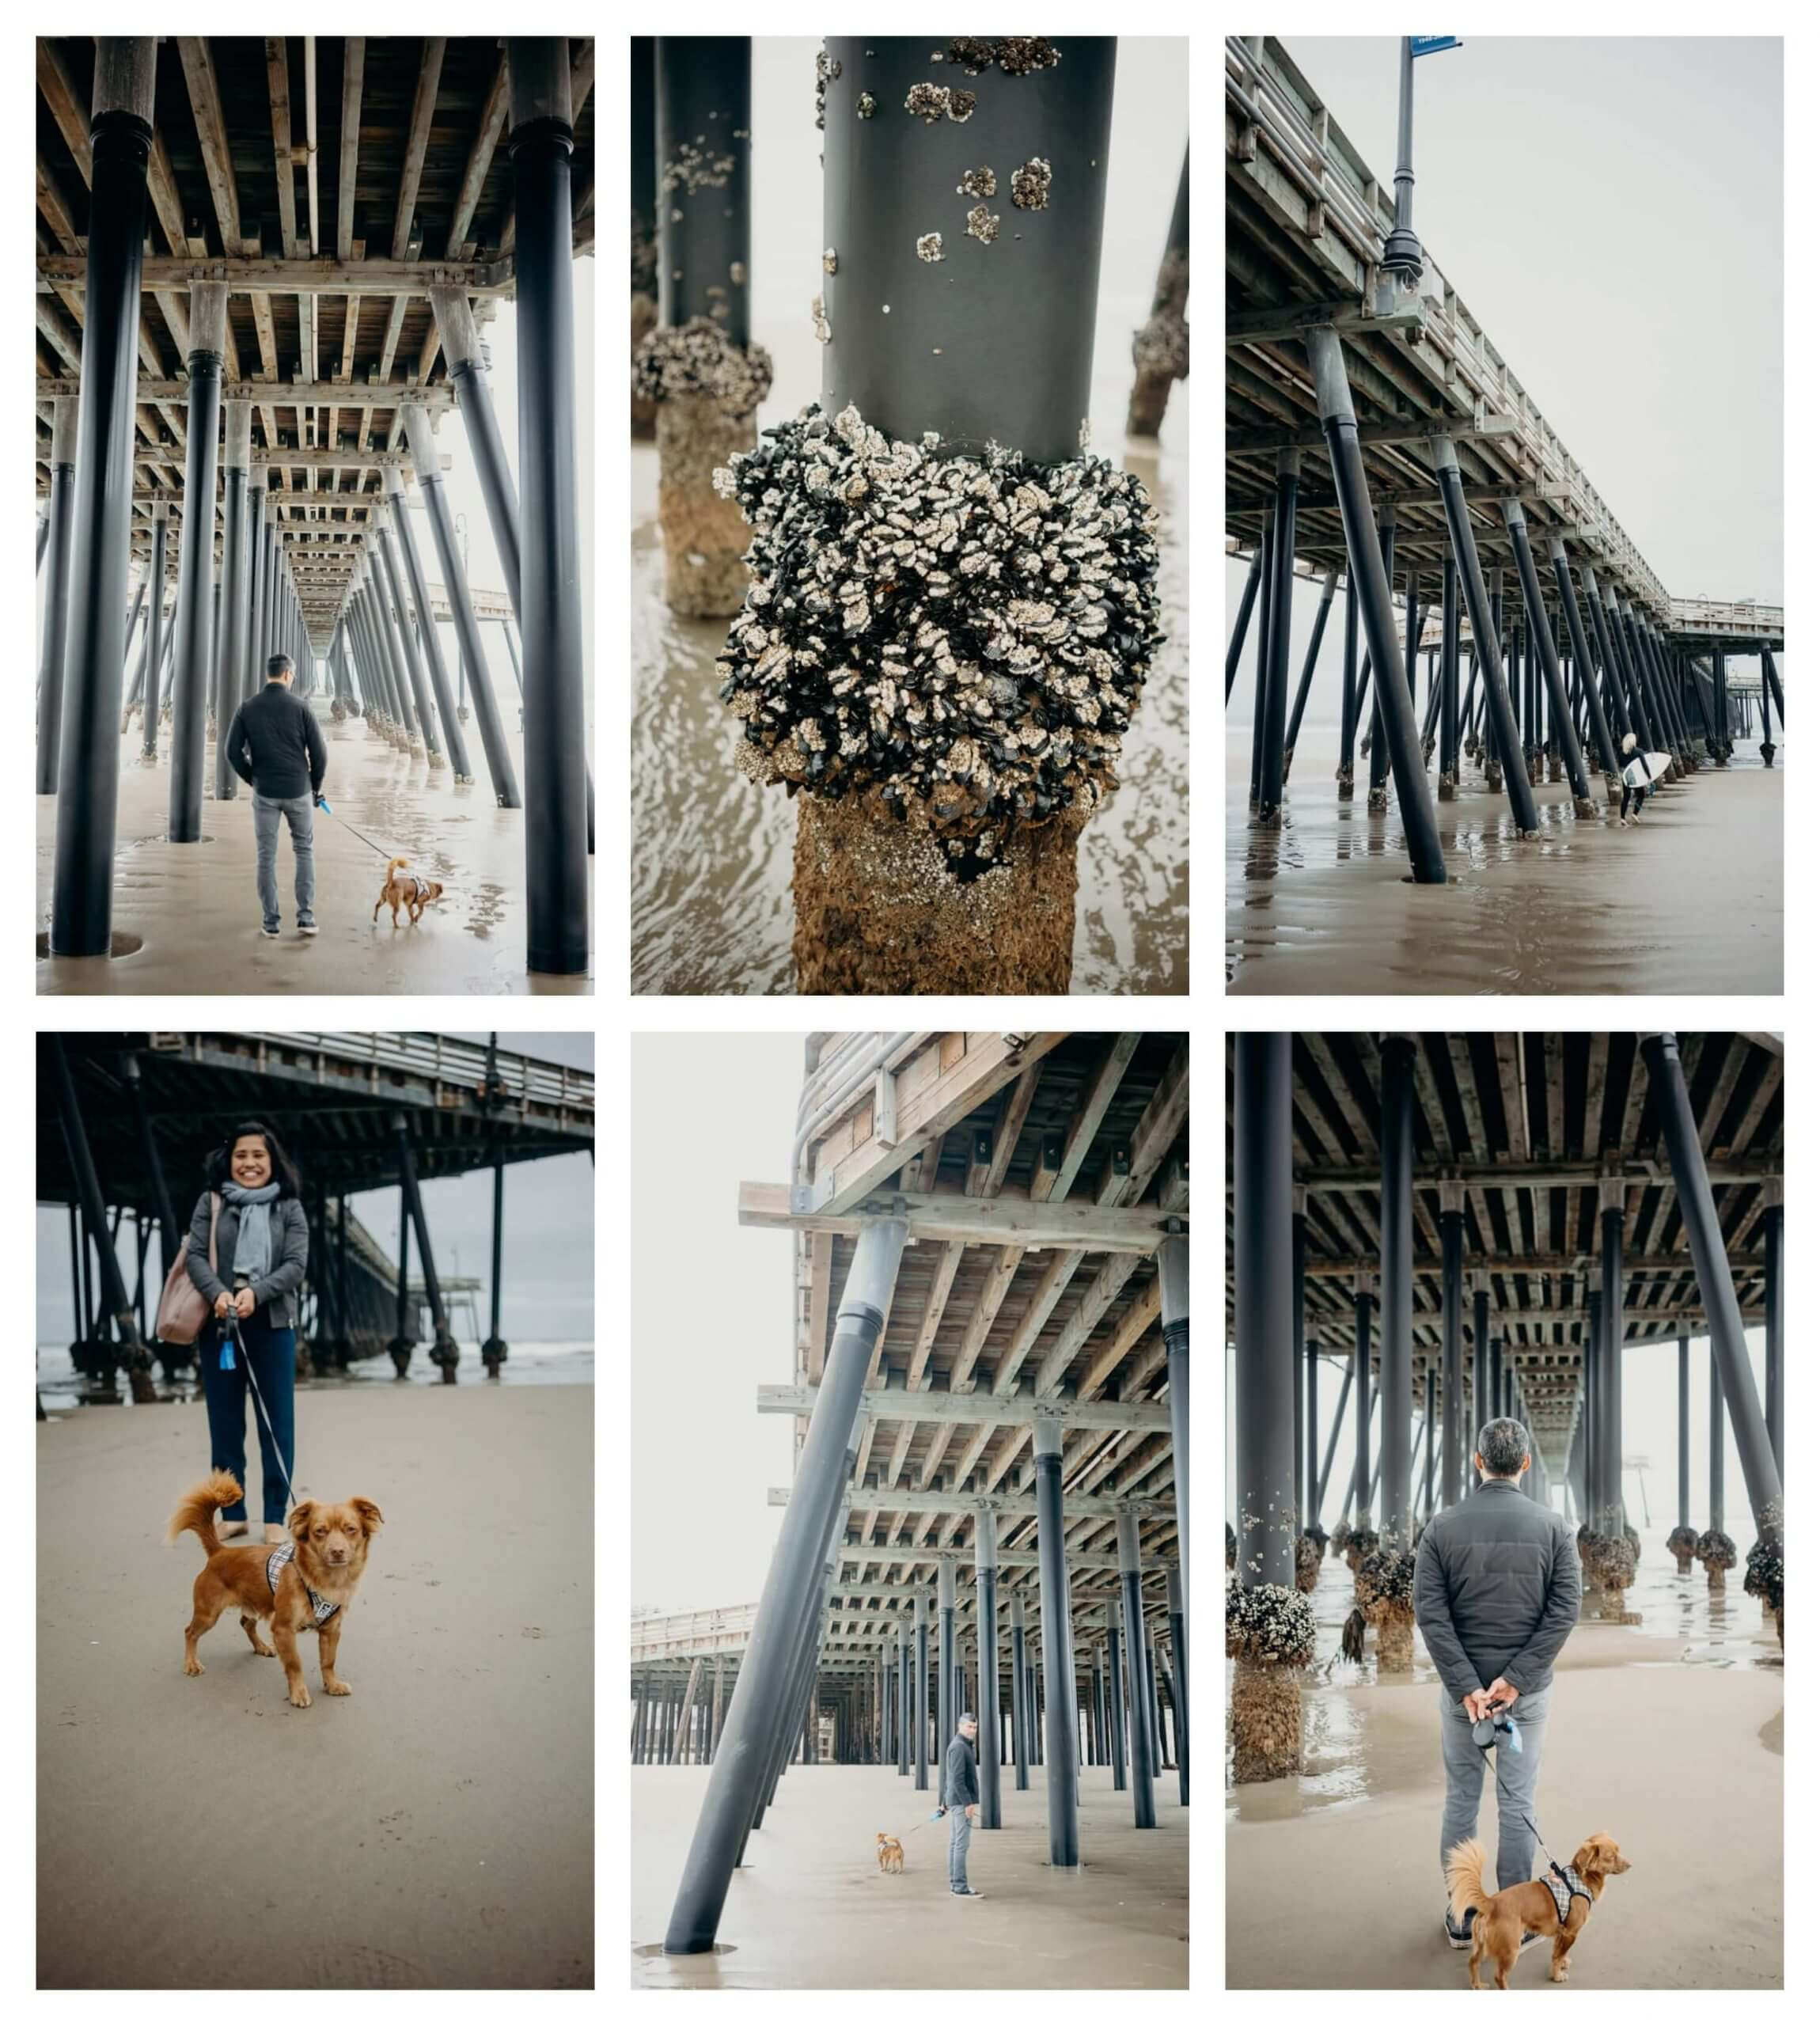 Pismo Beach is a state beach that is dog friendly, Pismo beach and Pier